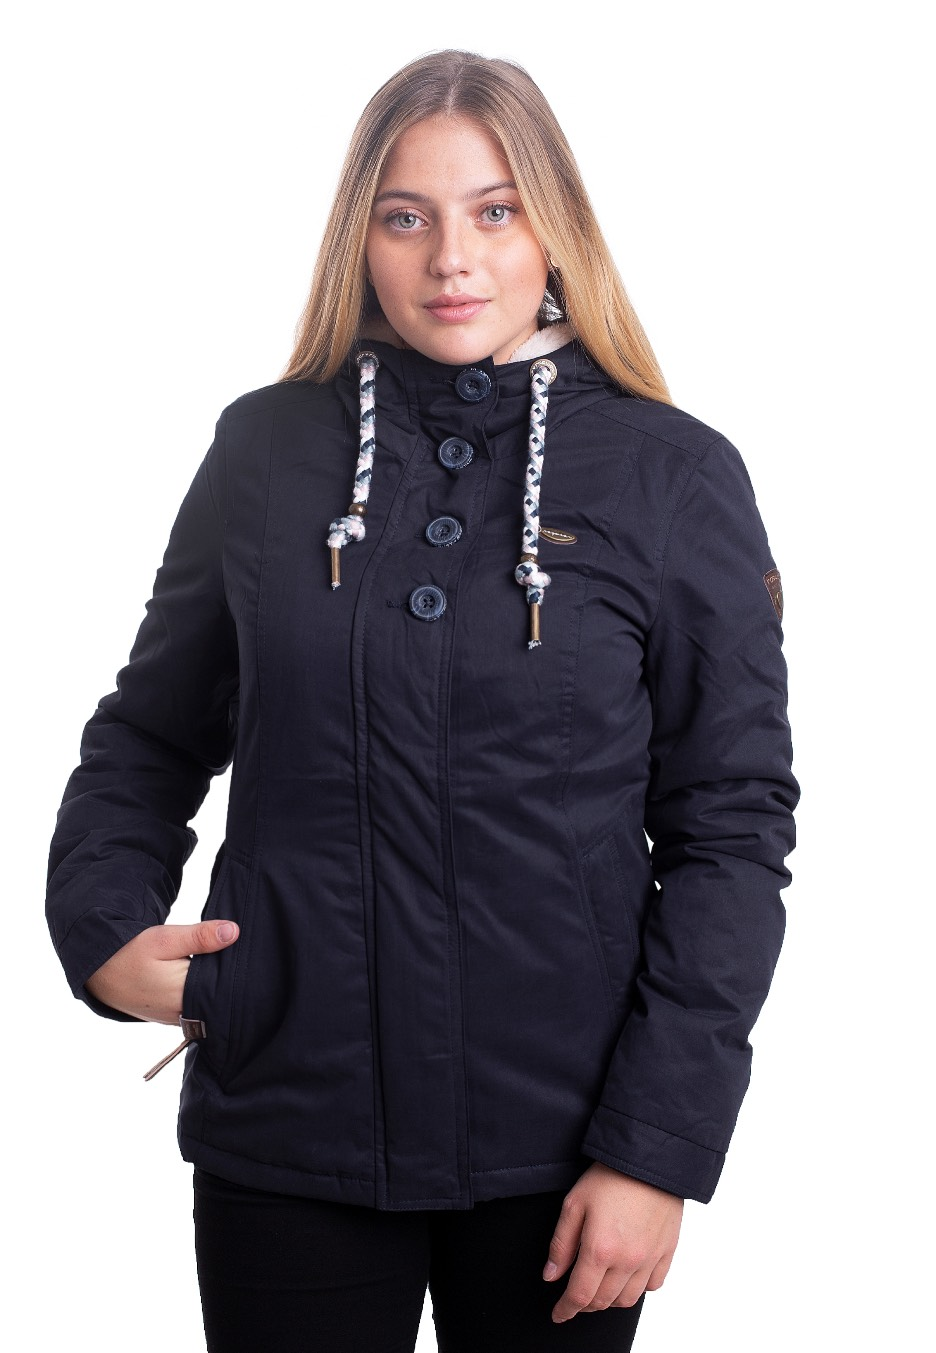 Jacken - Ragwear Lynx Navy Jacken  - Onlineshop IMPERICON